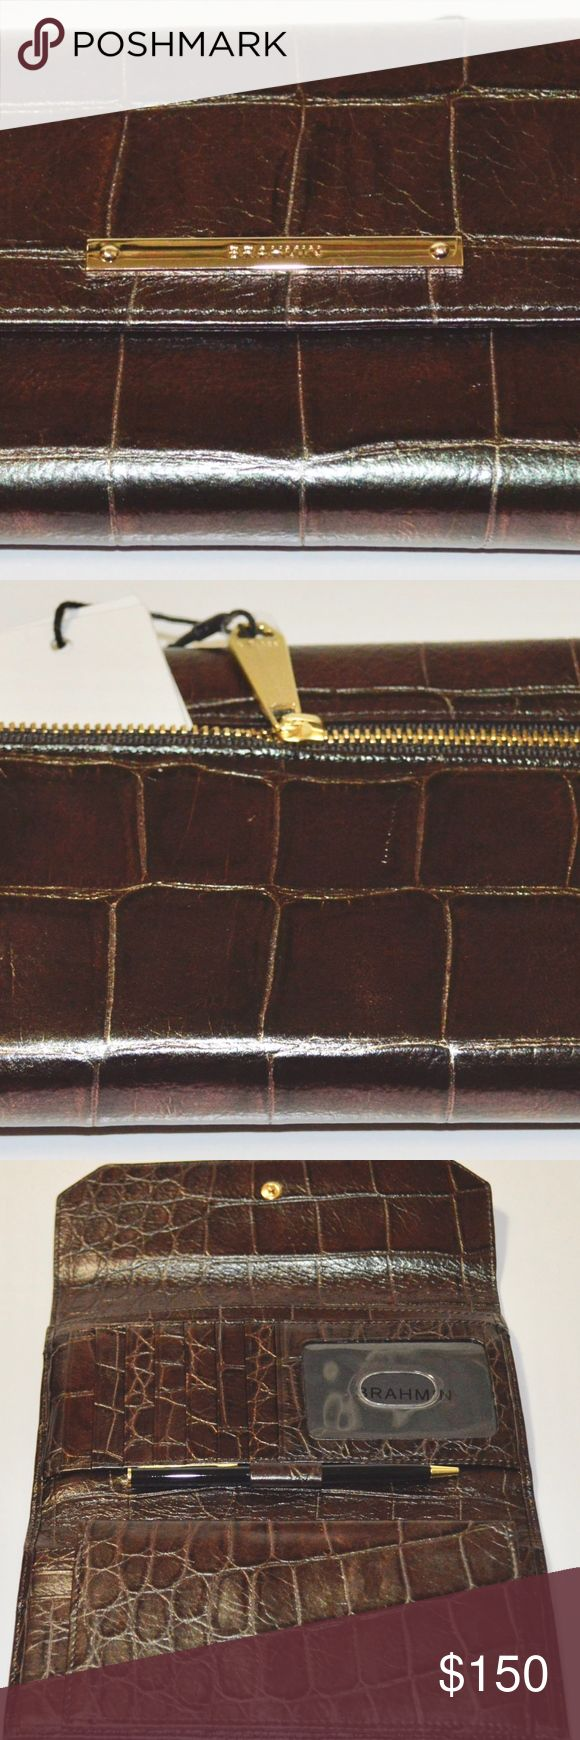 Brahmin Soft Checkbook Wallet - Petrol Versilia BRAHMIN PETROL VERSILIA CROCO EMBOSSED LEATHER SOFT CHECKBOOK WALLET CLUTCH W/ PEN   FABULOUS NEW COLOR    TRULY A CLASSY RICH COLOR WALLET AND MUCH SOFTER LEATHER THAN TRADITIONAL MELBOURNE CROCO LEATHER  7.25x 1.25 x 4 approx  BRAND NEW & INCLUDES ORIGINAL TAGS AND REG CARD  MULTIPLE CREDIT CARD SLOTS PLUS PHOTO ID SLOT  3 BILL HOLDER SLOTS  FULLY LINED INSIDE WITH MATCHING LEATHER   SNAP CLOSURE Brahmin Bags Wallets